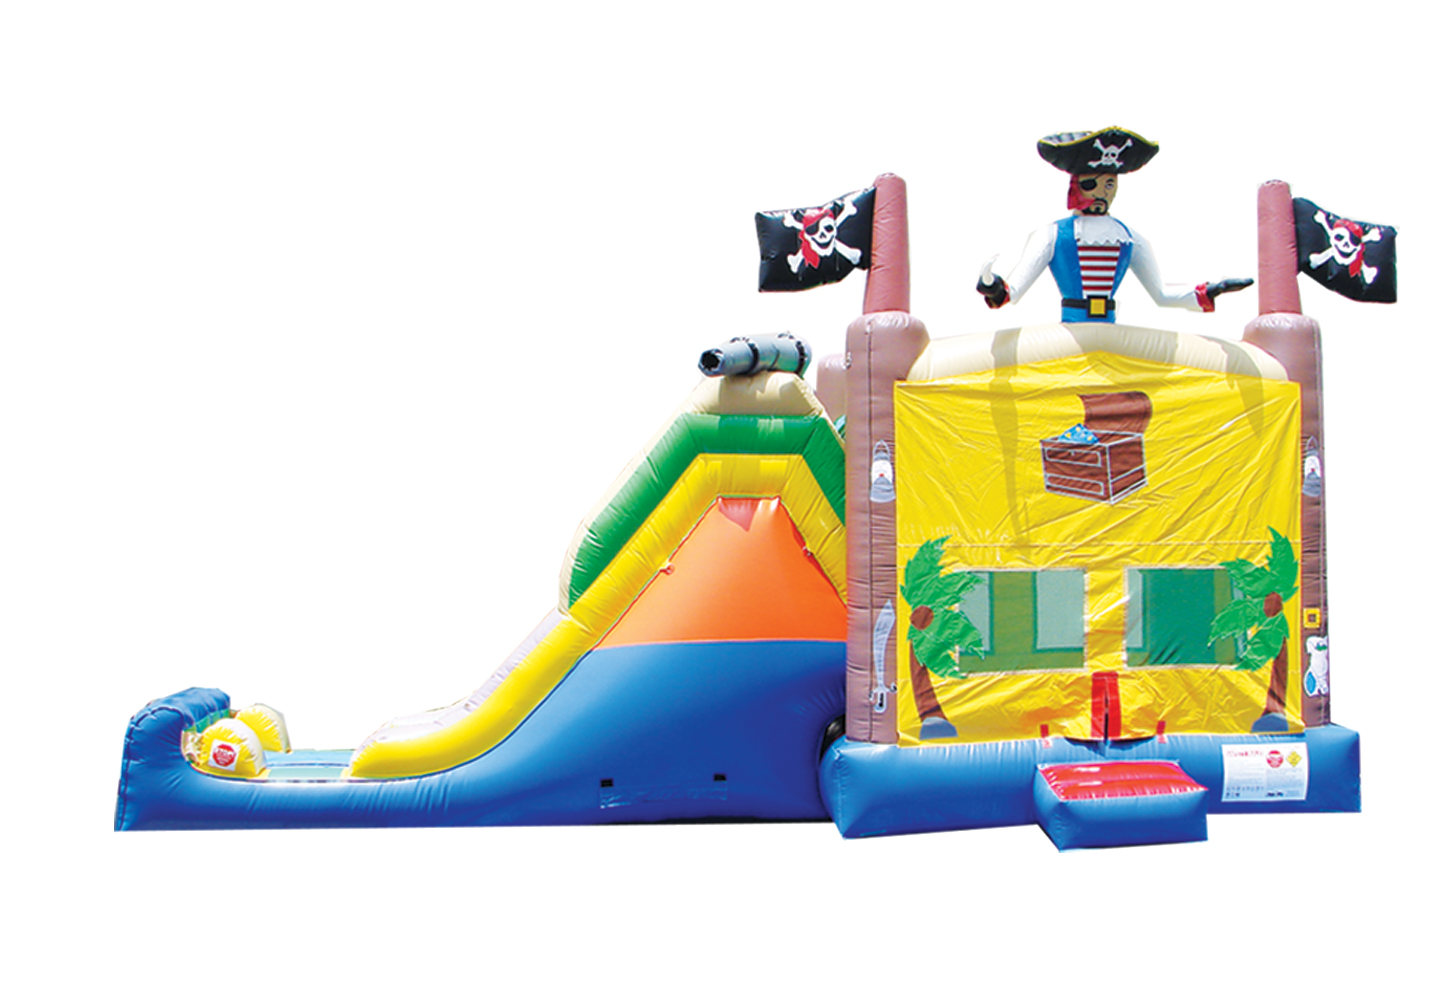 Pirate Treasure 4-1 Combo Bounce House Hopper  WET or DRY image - Jacksonville, FL